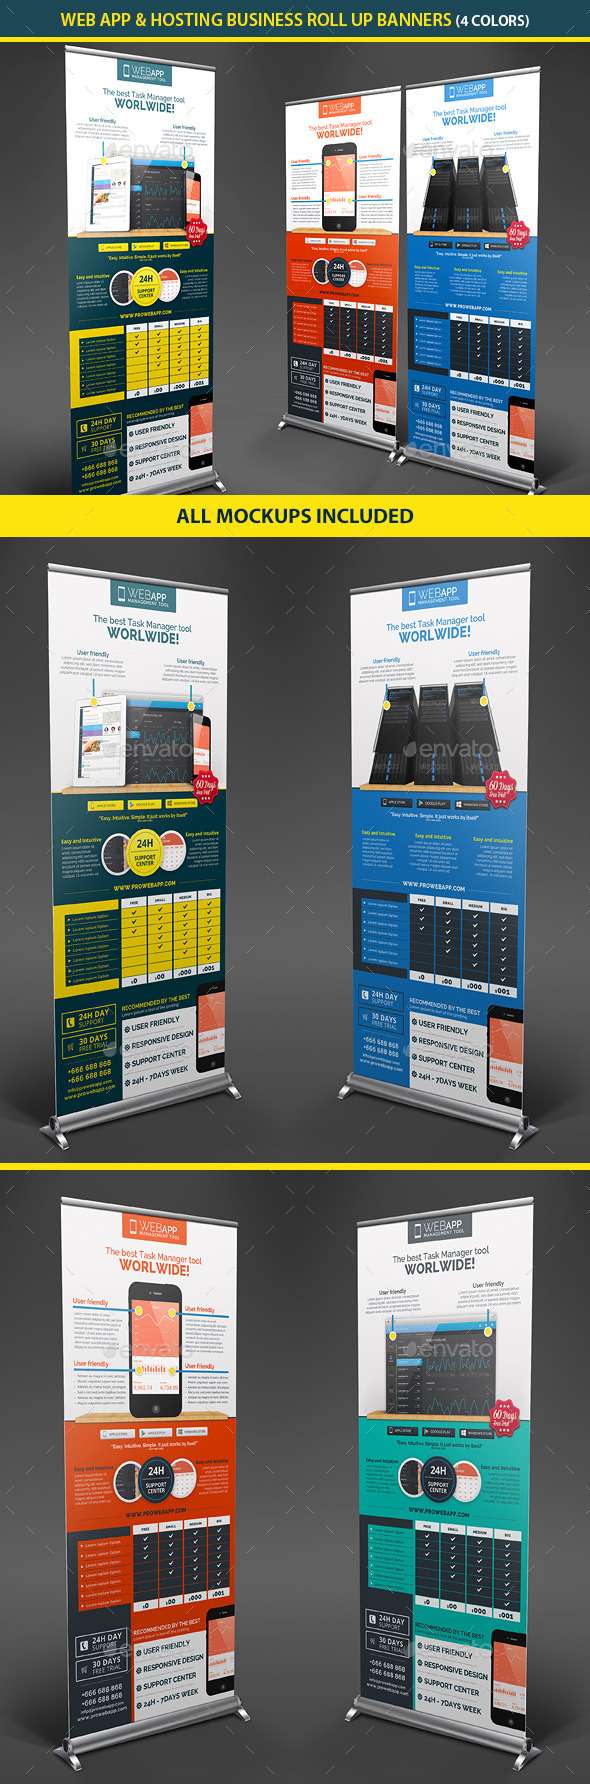 Web App Tech & Hosting Roll Up Banners - Signage Print Templates